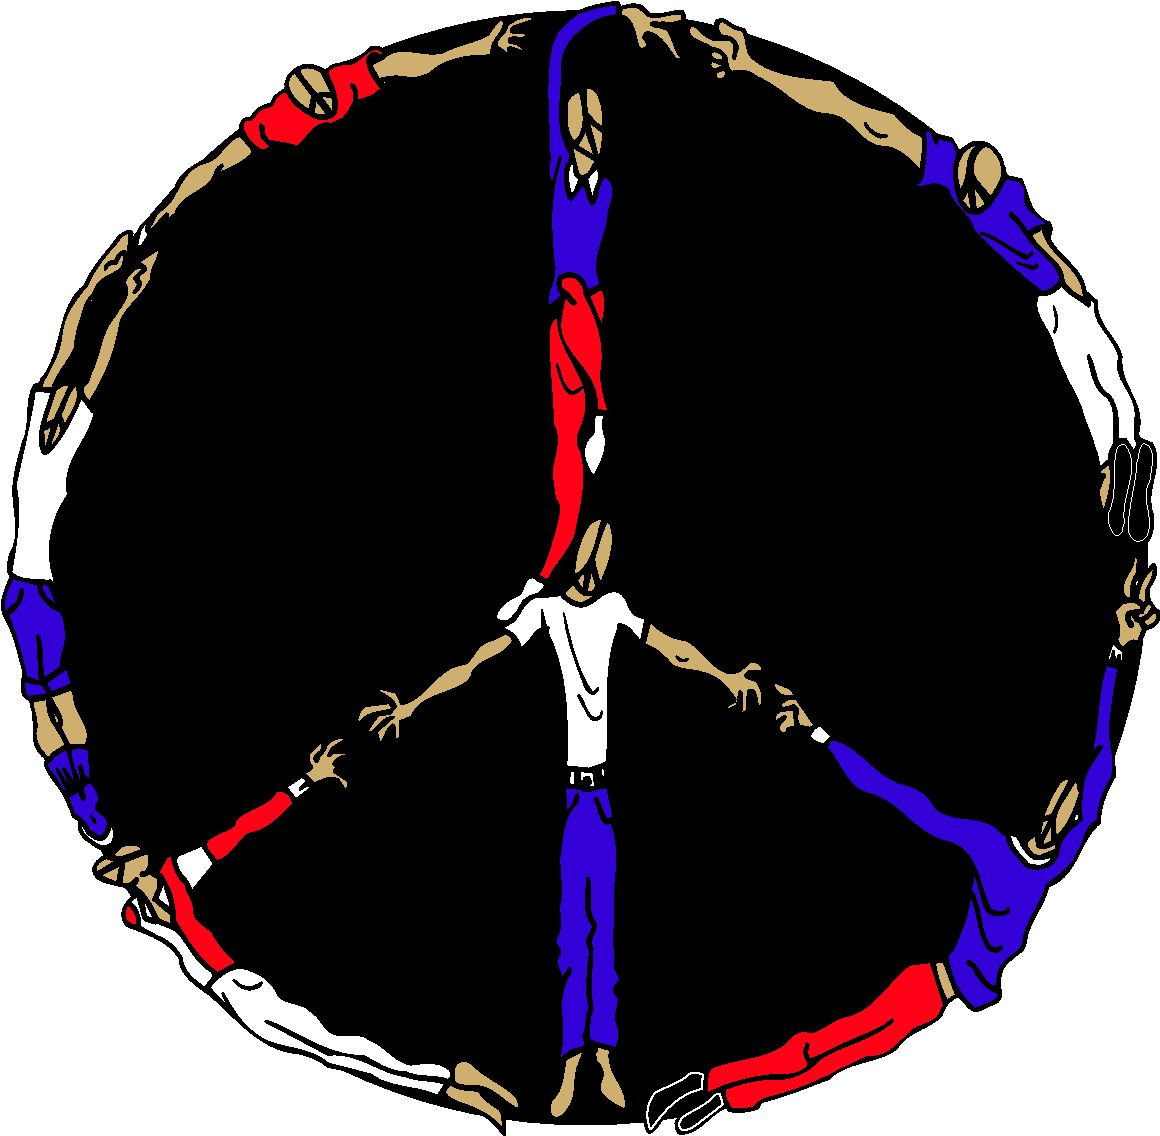 Bruce Atchison Author What Harm Could A Peace Symbol Do